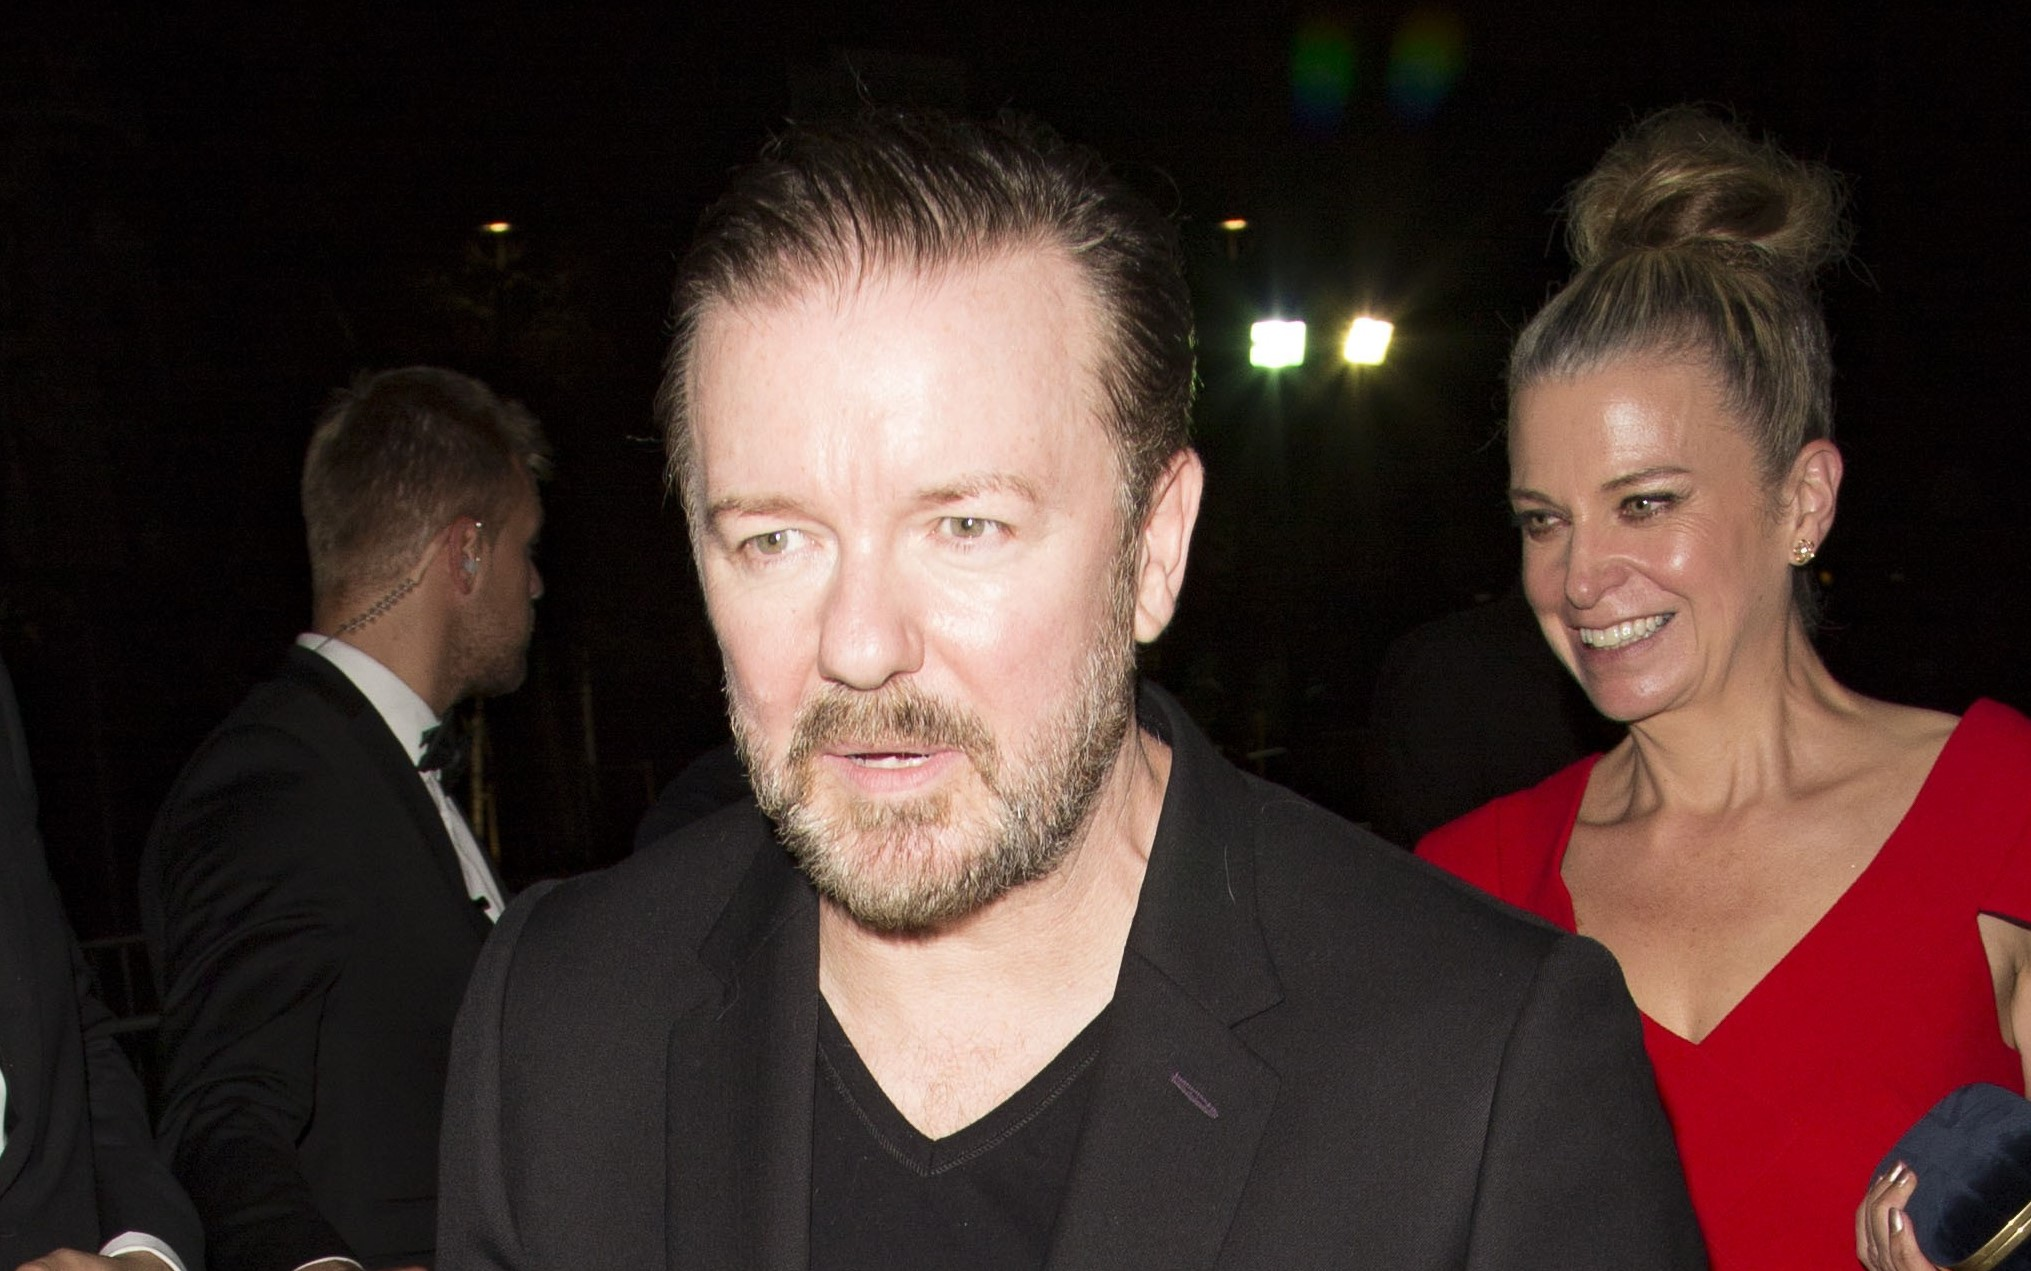 Ricky Gervais risks feud with Beckhams after 'liking negative tweet'